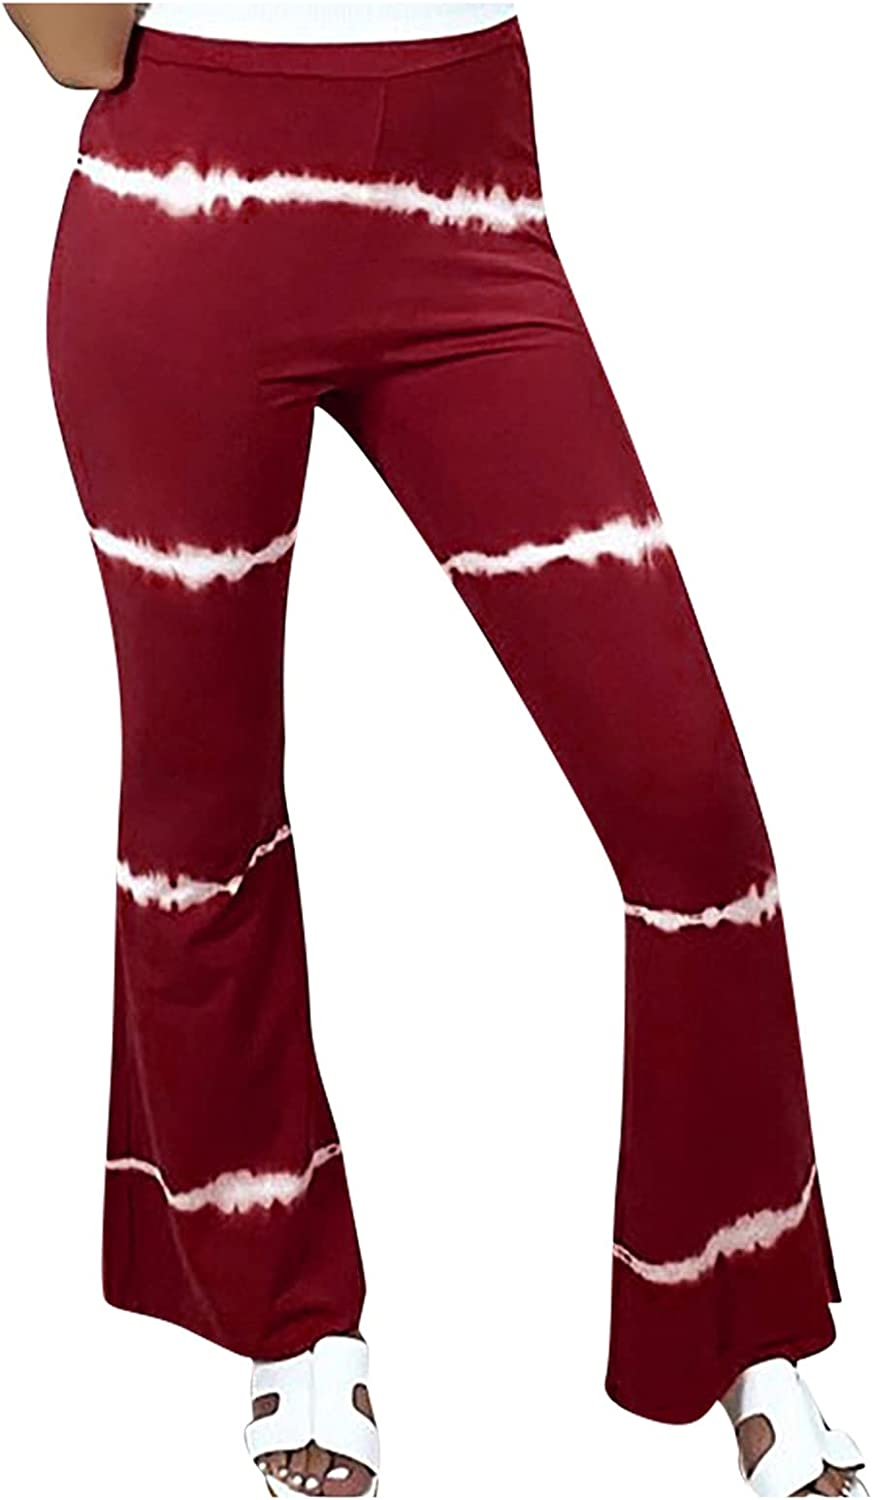 VonVonCo Flare Pants for Women Casual Elastic Girdle Waist Wide Leg Pants Trousers Stretch Printed Horn Red Medium